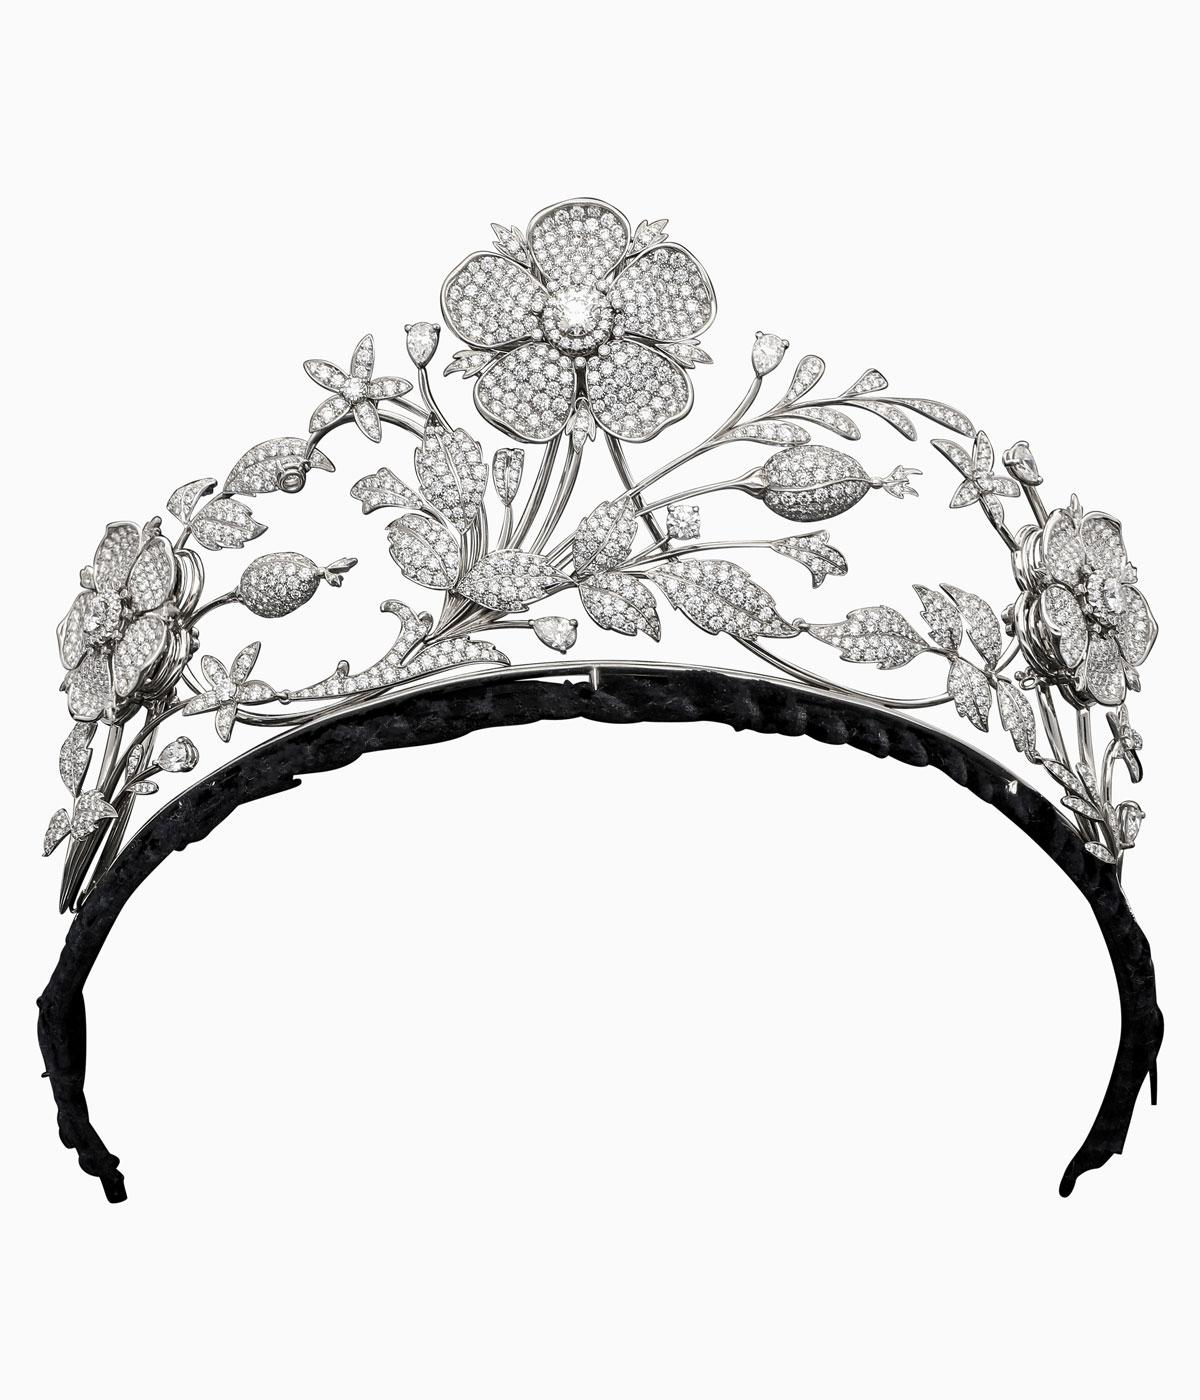 Large diamond flower tiara against a pale grey background